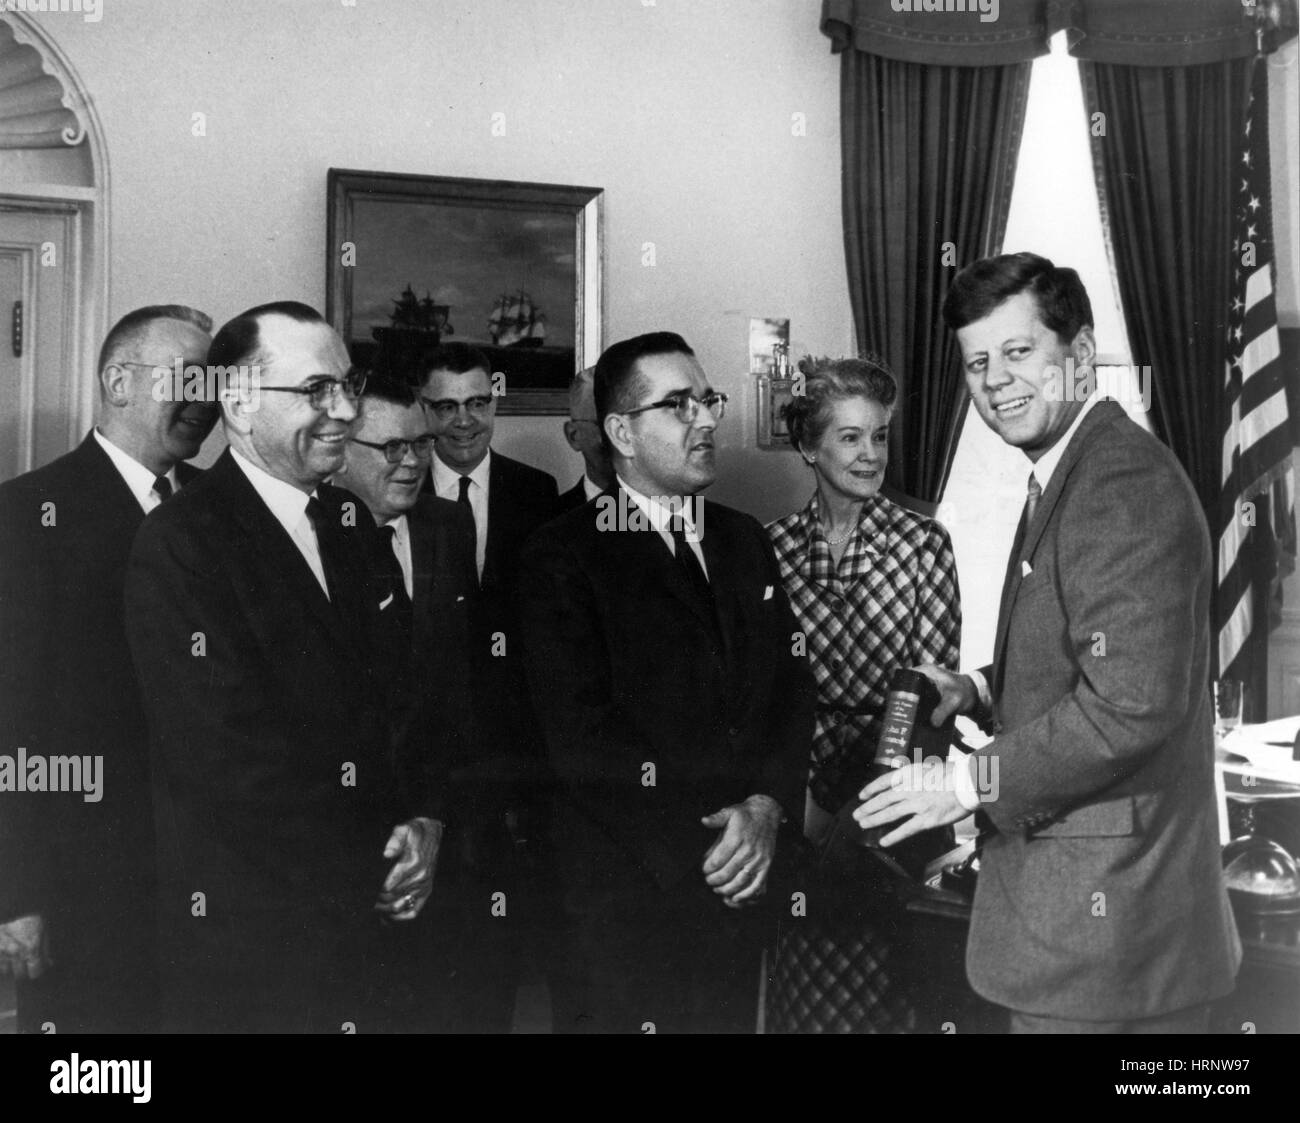 JFK Presented with Public Papers, 1962 - Stock Image